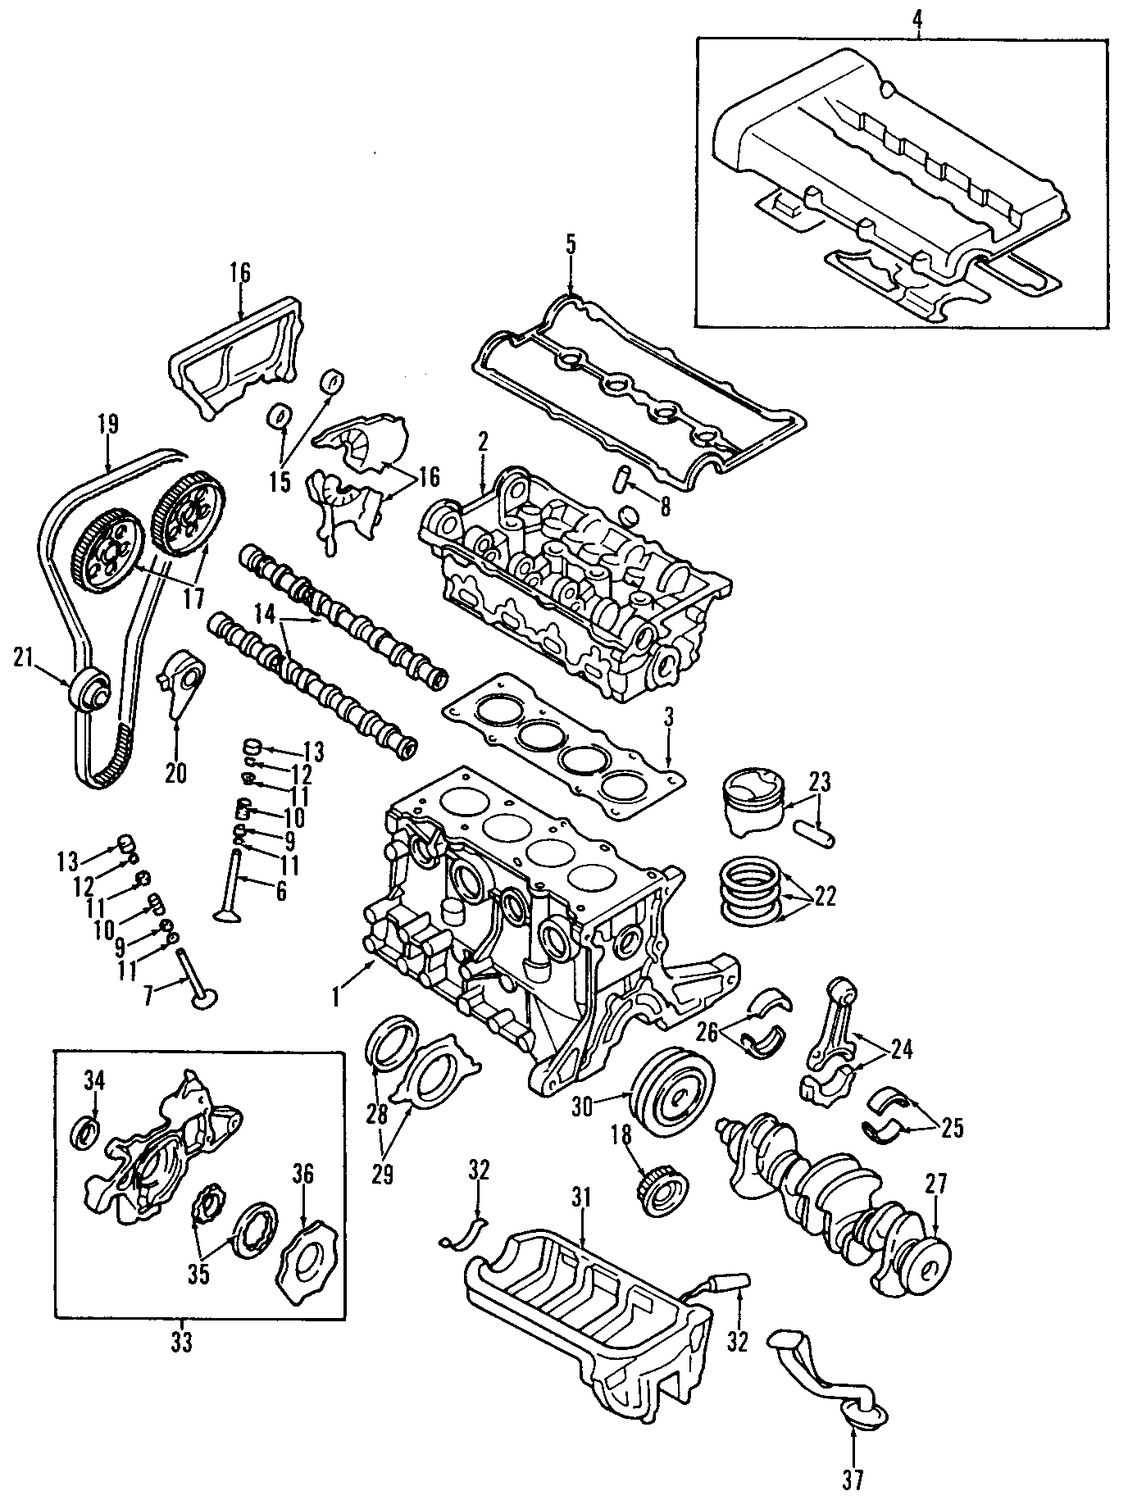 F961050 engine diagram 2002 kia rio engine wiring diagrams instruction yanmar l100 generator wiring diagram at mifinder.co